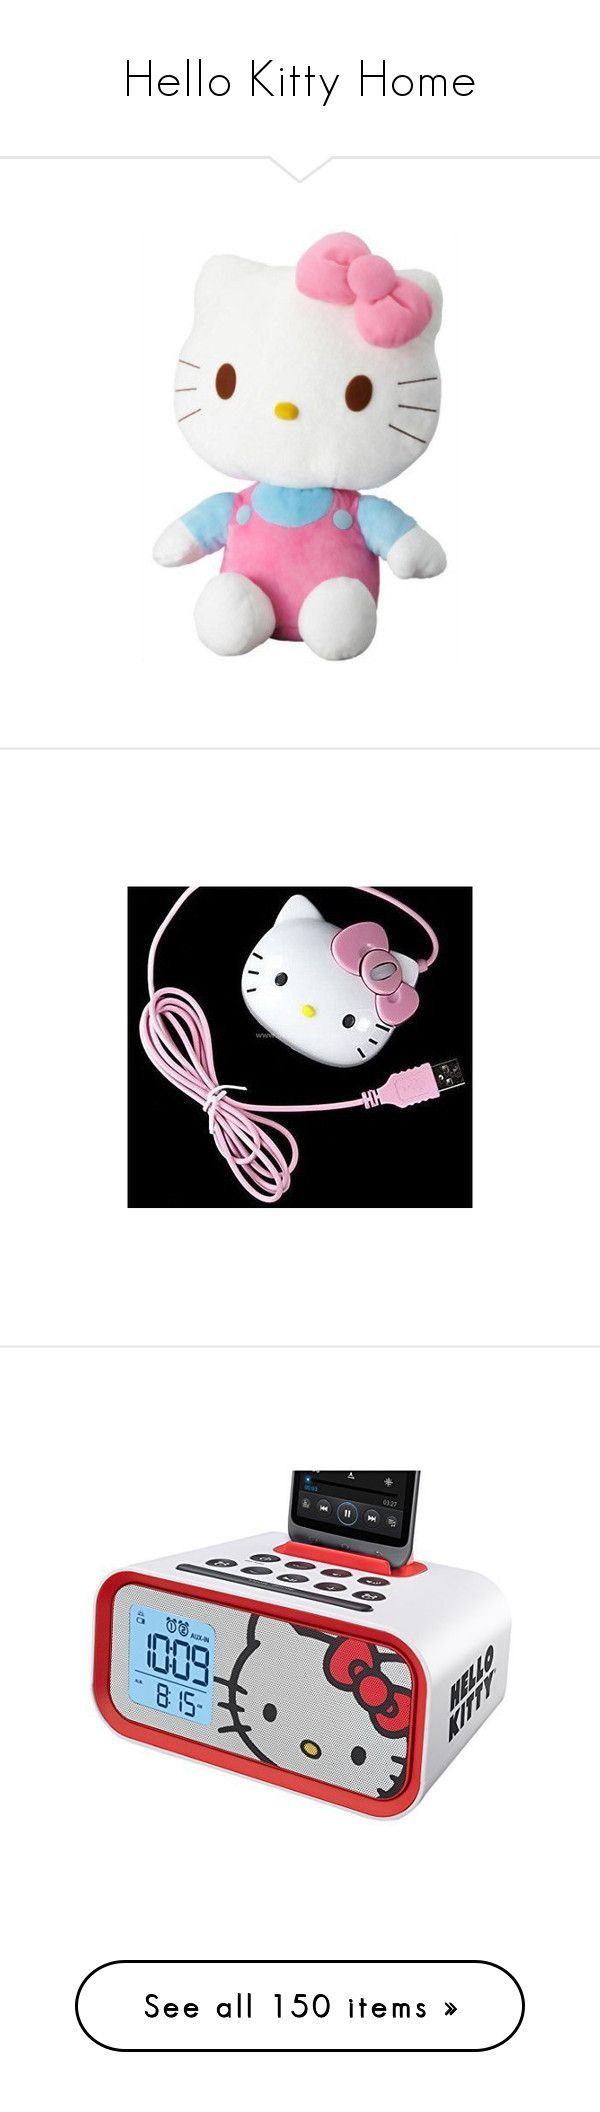 """""""Hello Kitty Home"""" by lindaweldon ❤ liked on Polyvore featuring home, kitchen & dining, small appliances, bed & bath, bath, bath accessories, food storage containers, beauty products, beauty accessories and bags & cases"""